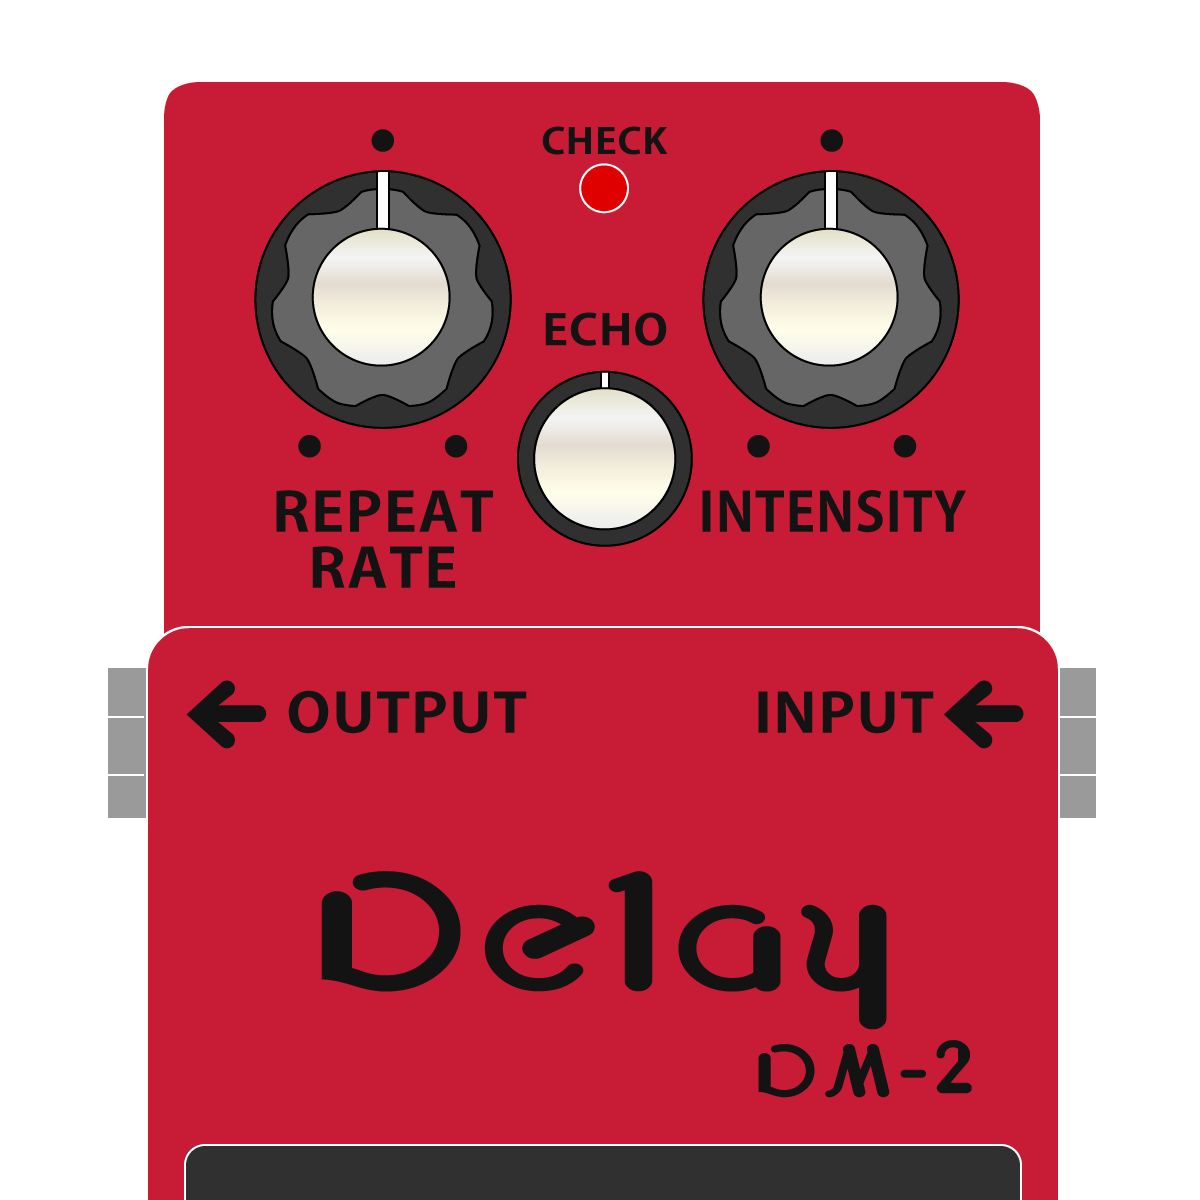 BOSS DM-2 Delay ディレイ